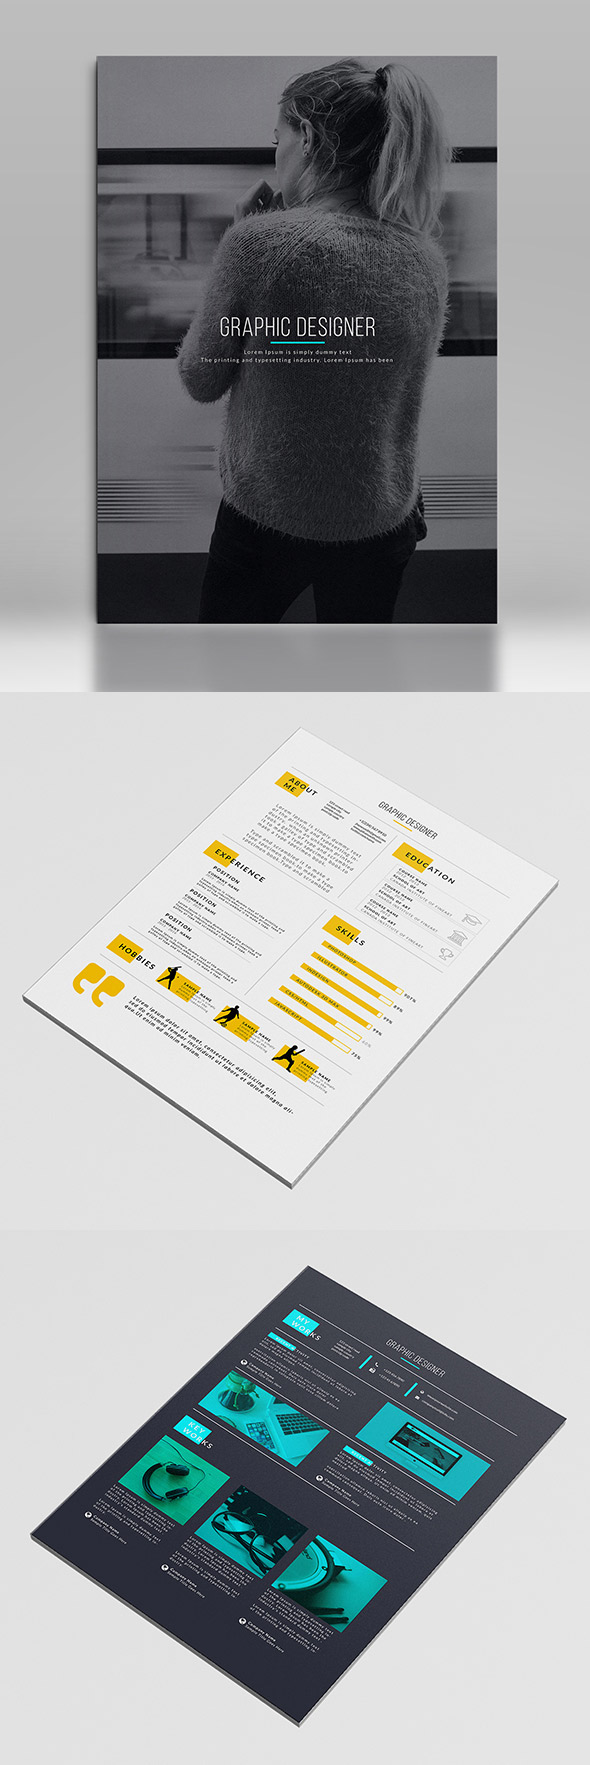 best resume templates design graphic design junction graphic designer resume template